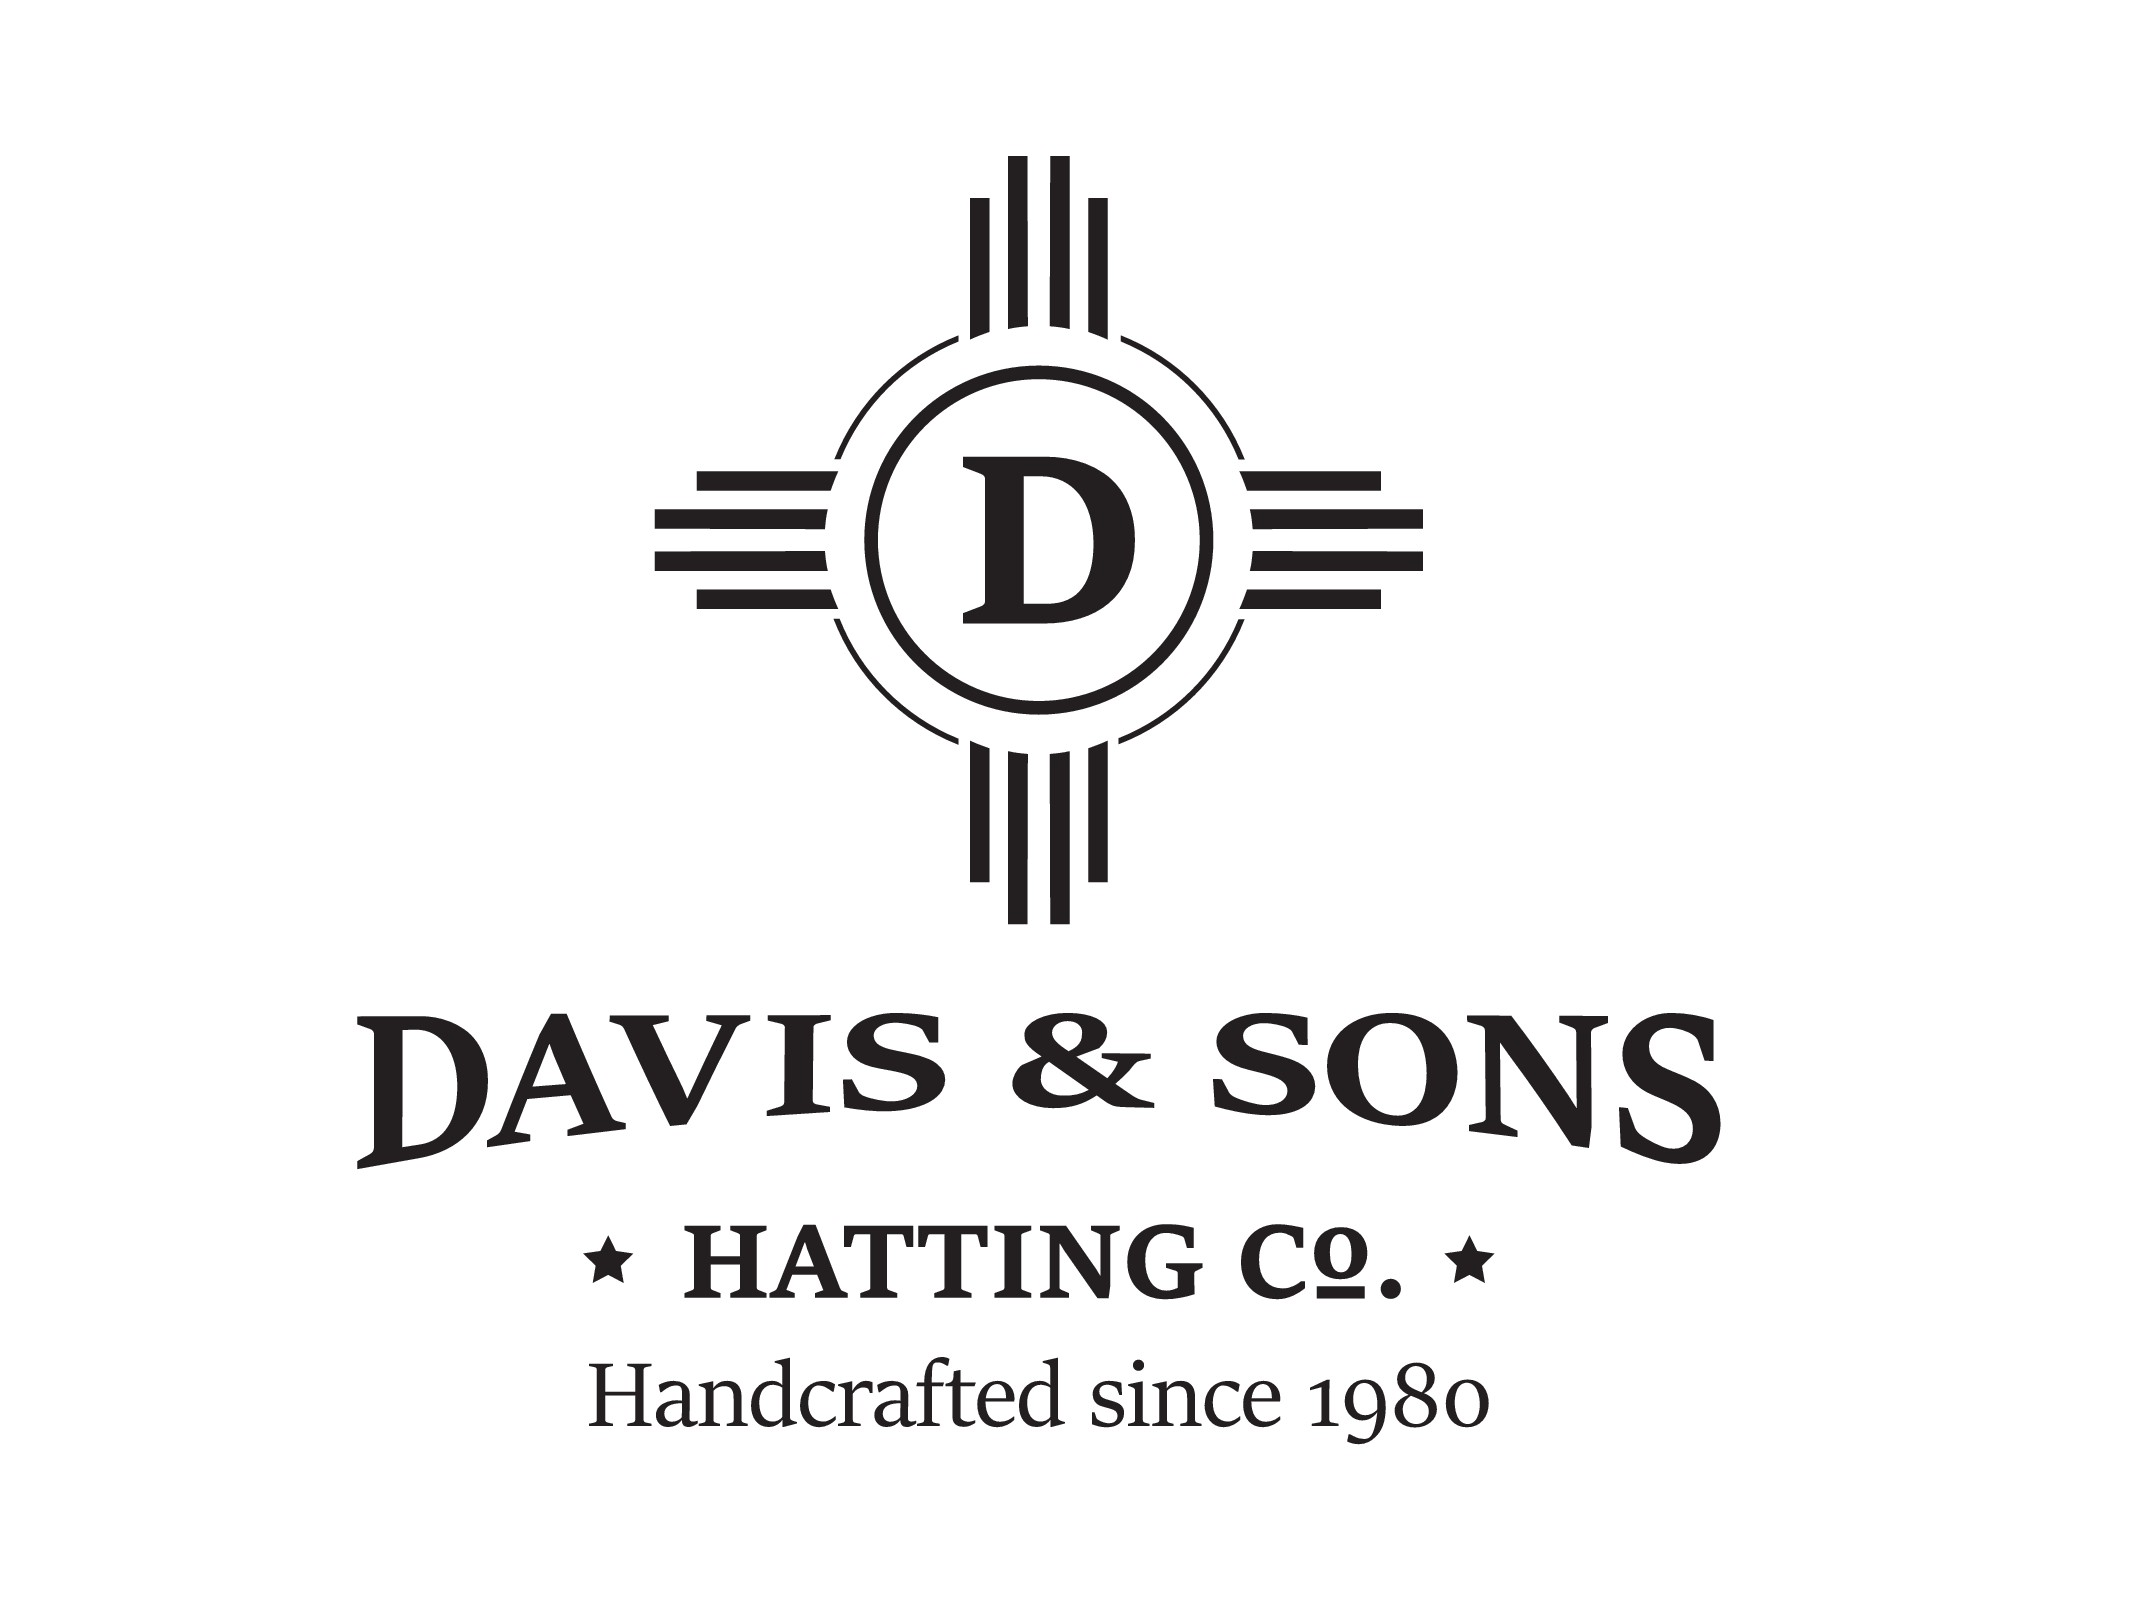 Create a luxury logo and website for Davis & Sons Hatting Co. a luxury custom hat making company